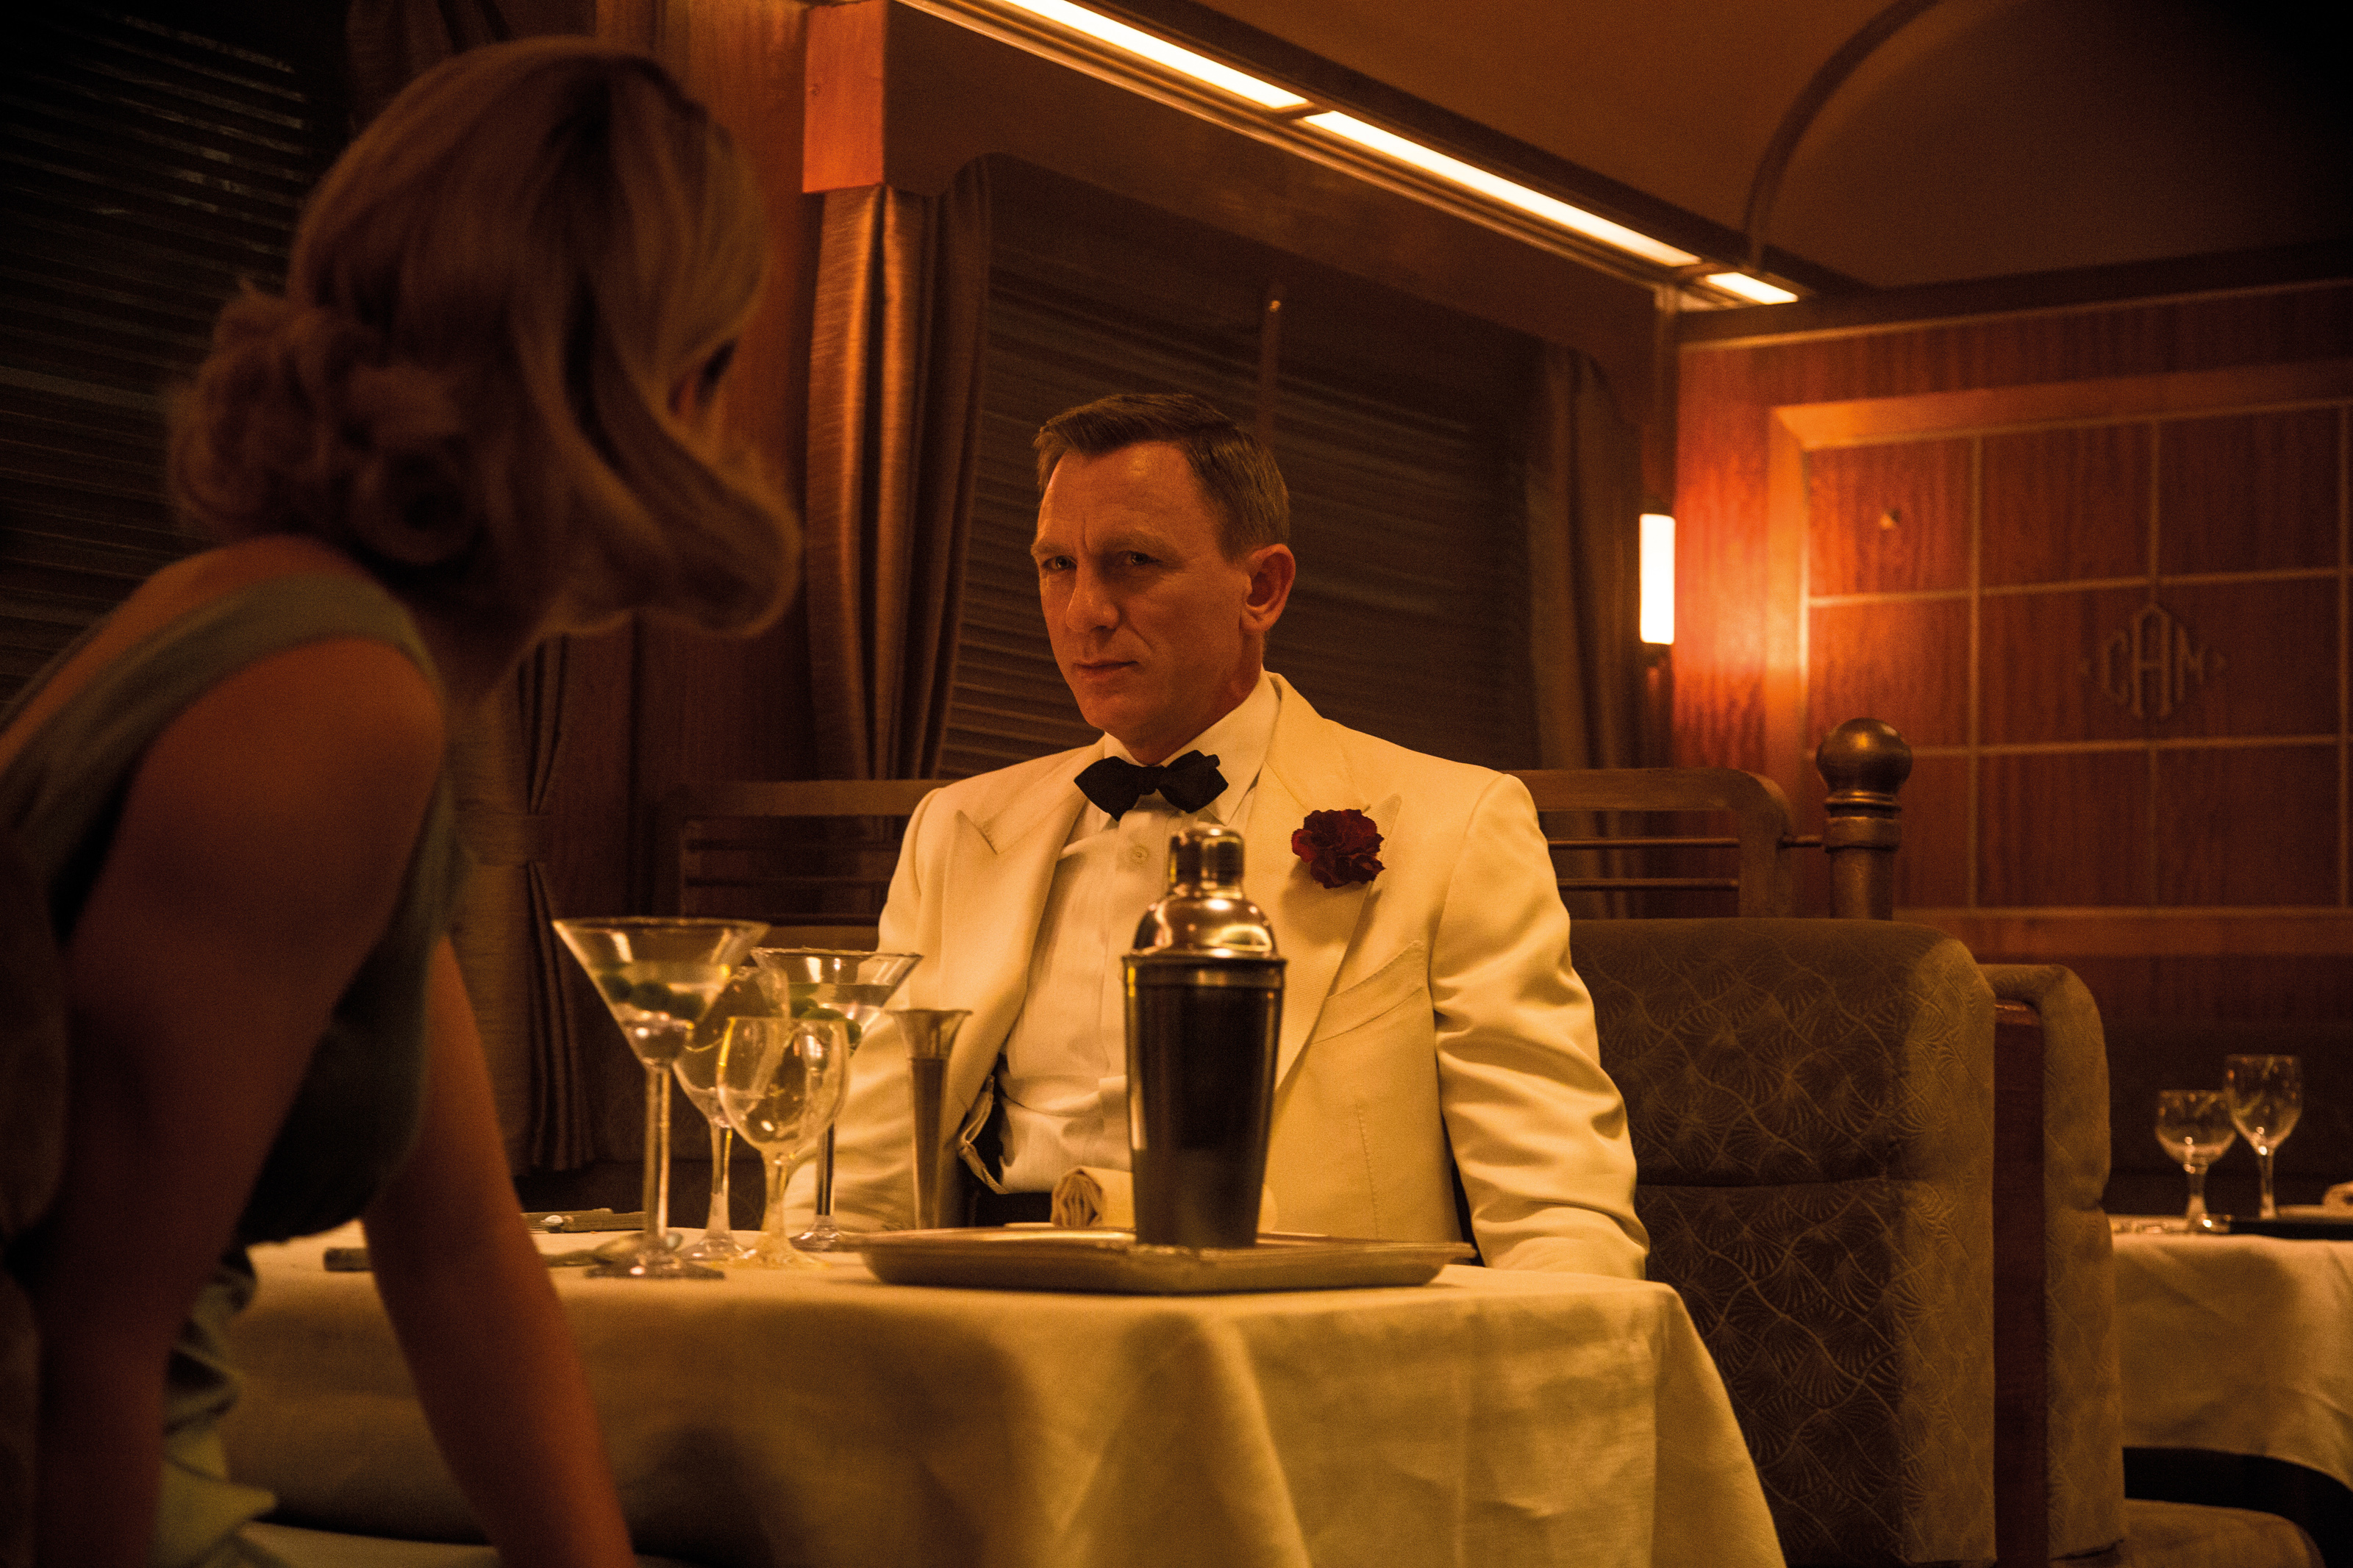 A two-piece dinner suit by Tom Ford, worn by Daniel Craig as James Bond